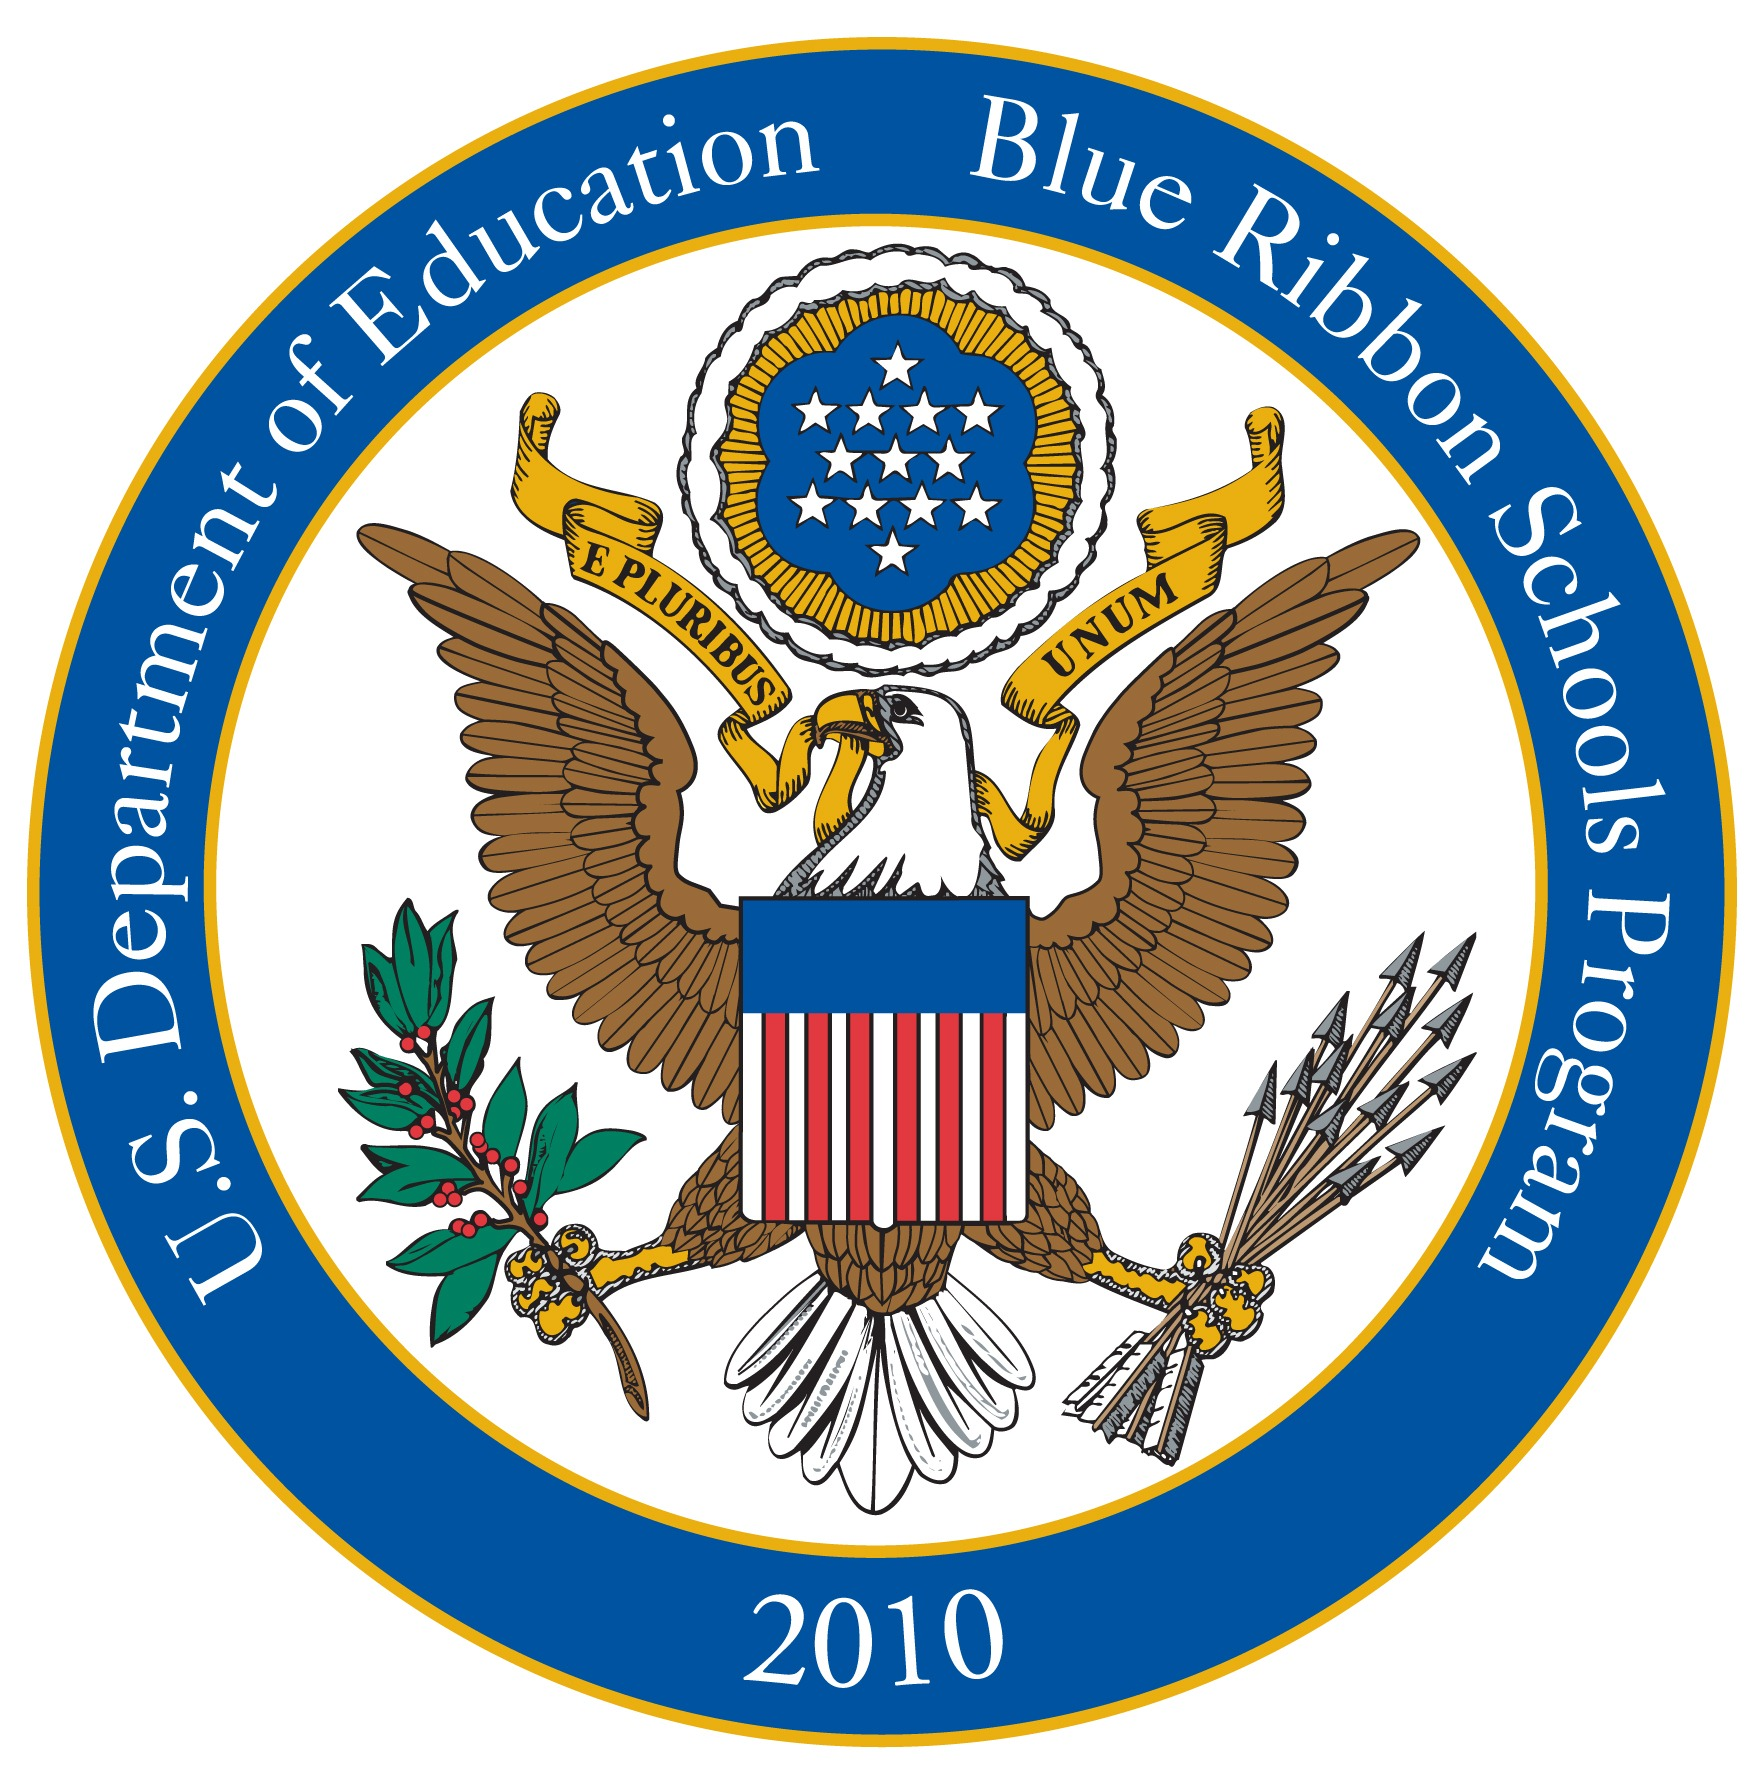 Grafton Bethel Elementary Receives National Blue Ribbon Award